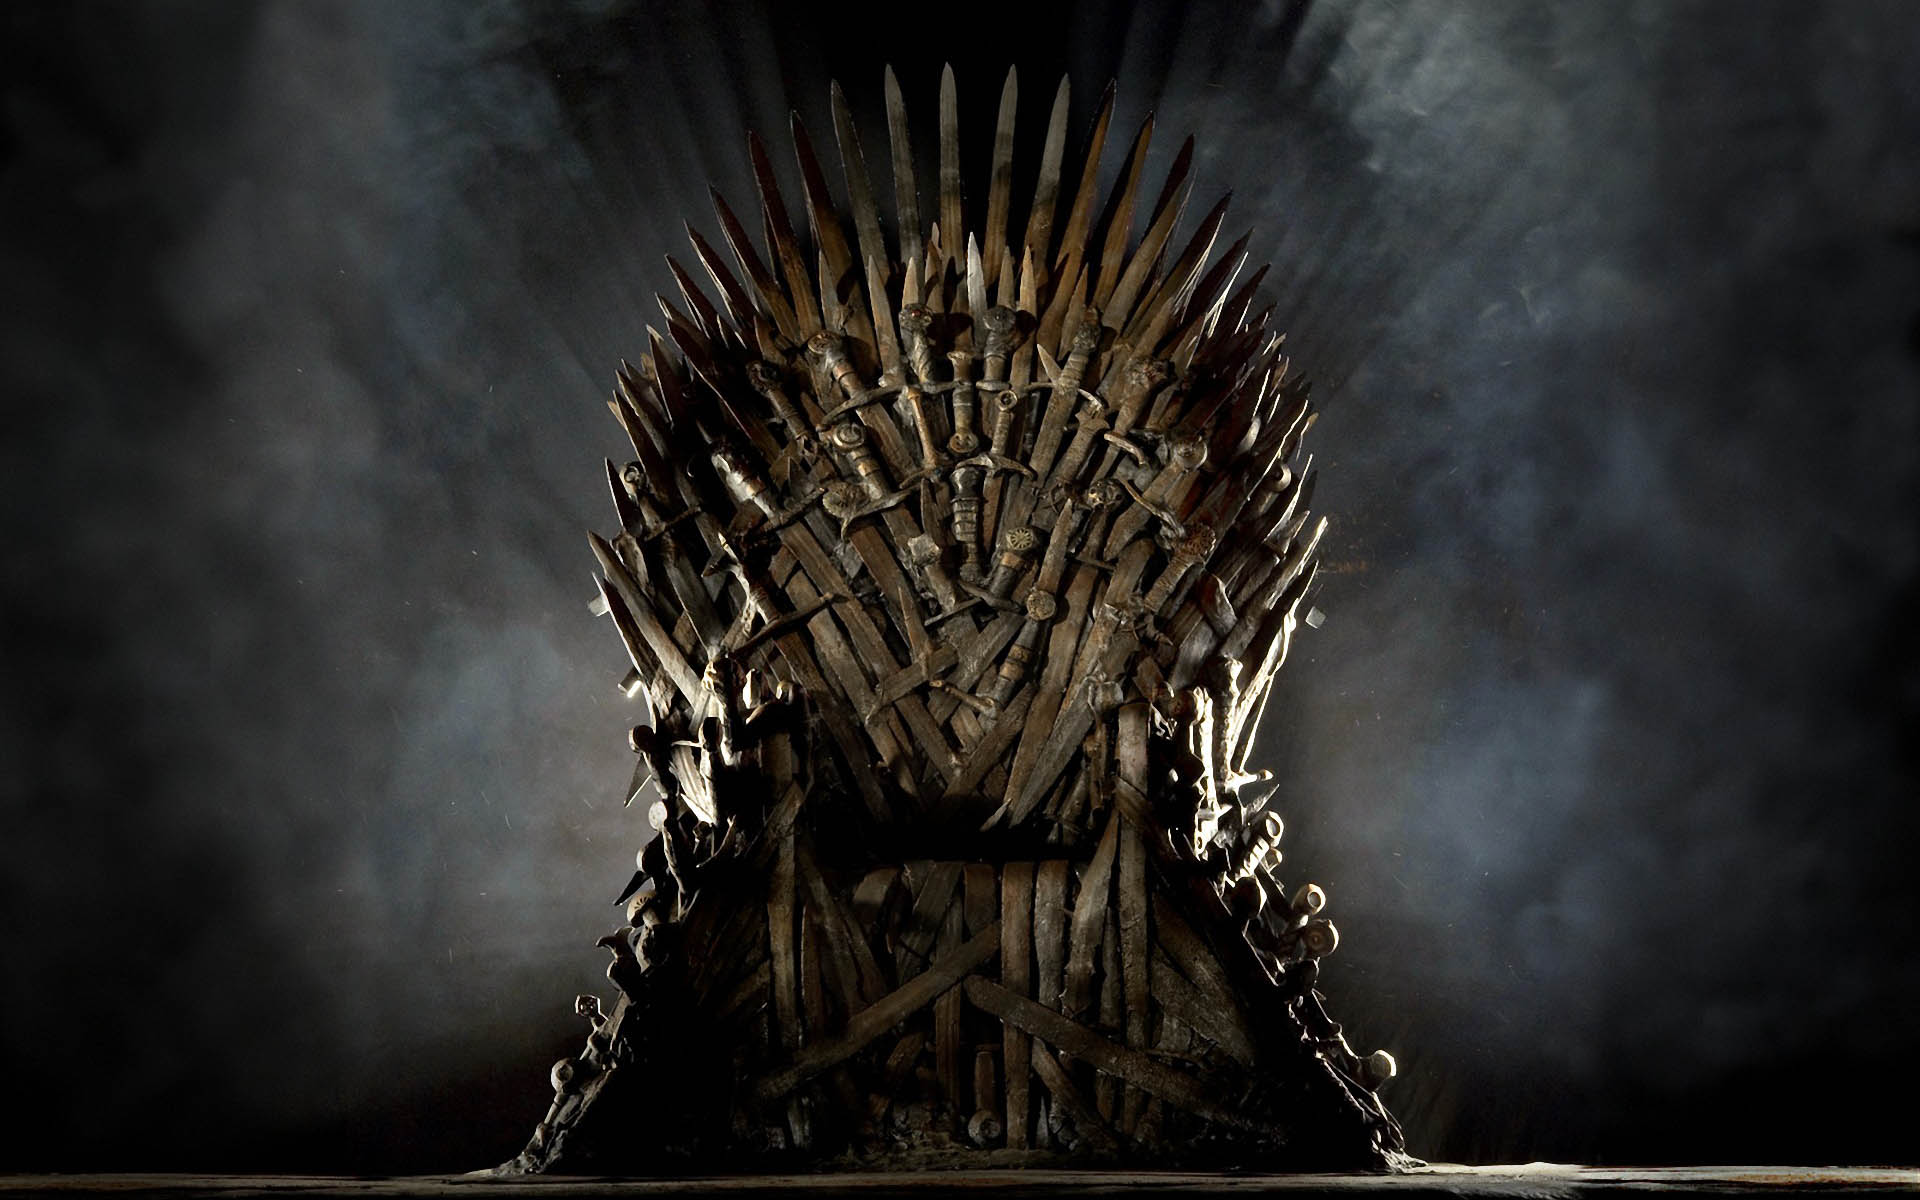 Showrunners de Game of Thrones dicen no a posibles precuelas